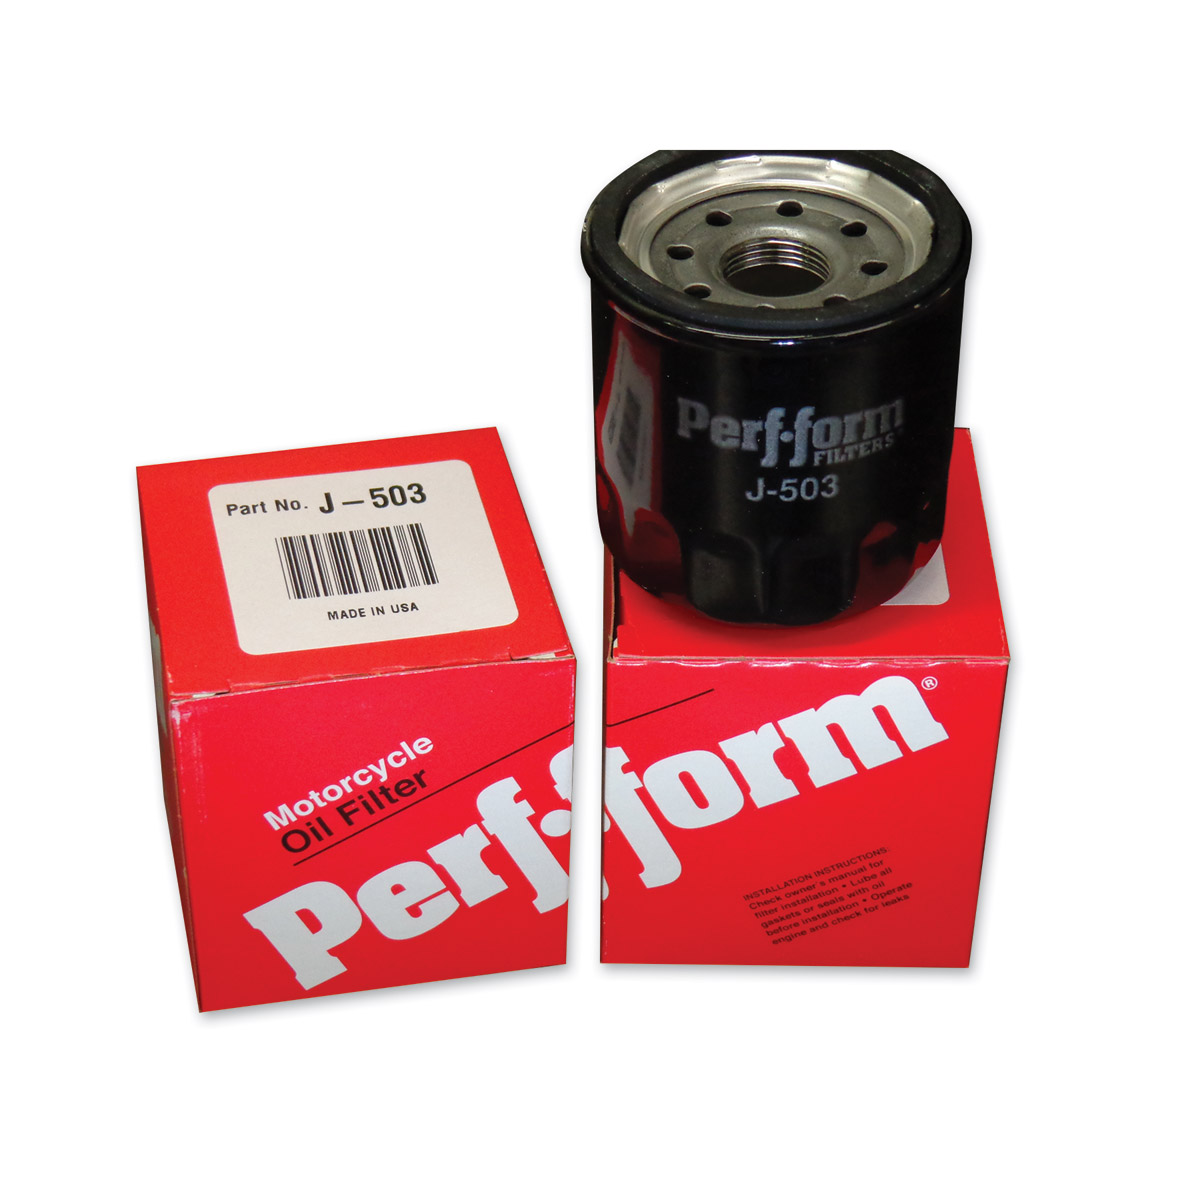 Perf-form Spin-On Oil Filter